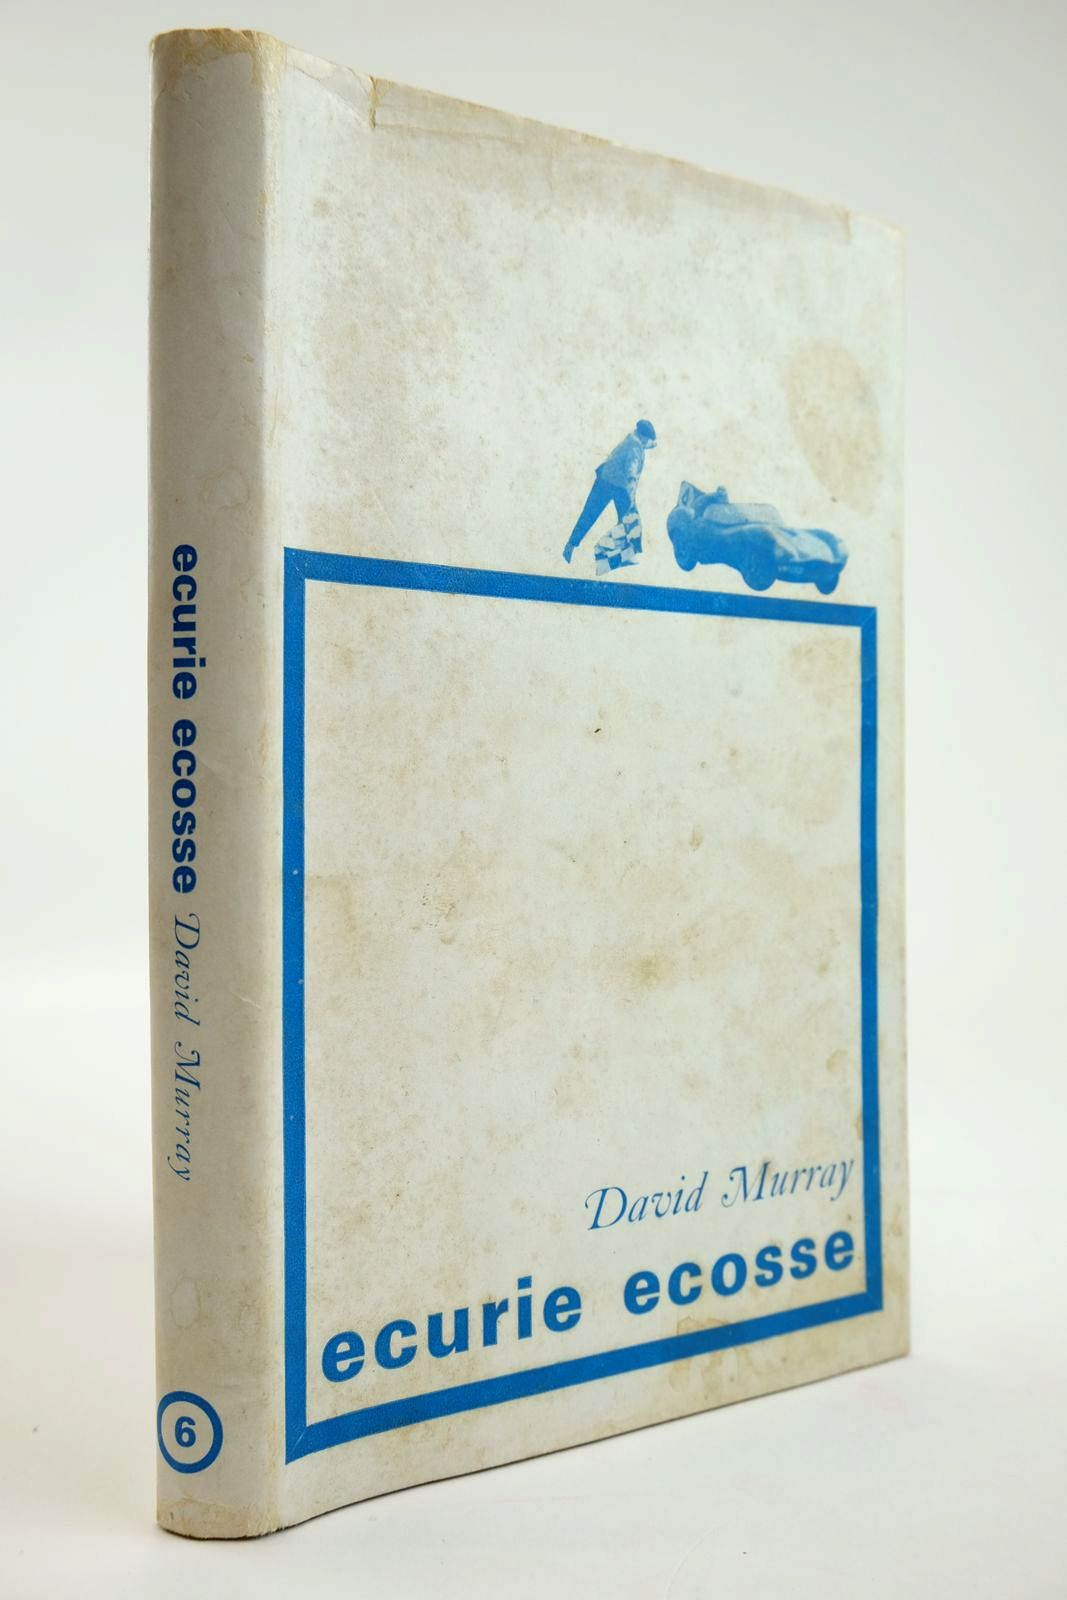 Photo of ECURIE ECOSSE written by Murray, David published by Motoraces Book Club (STOCK CODE: 2133532)  for sale by Stella & Rose's Books